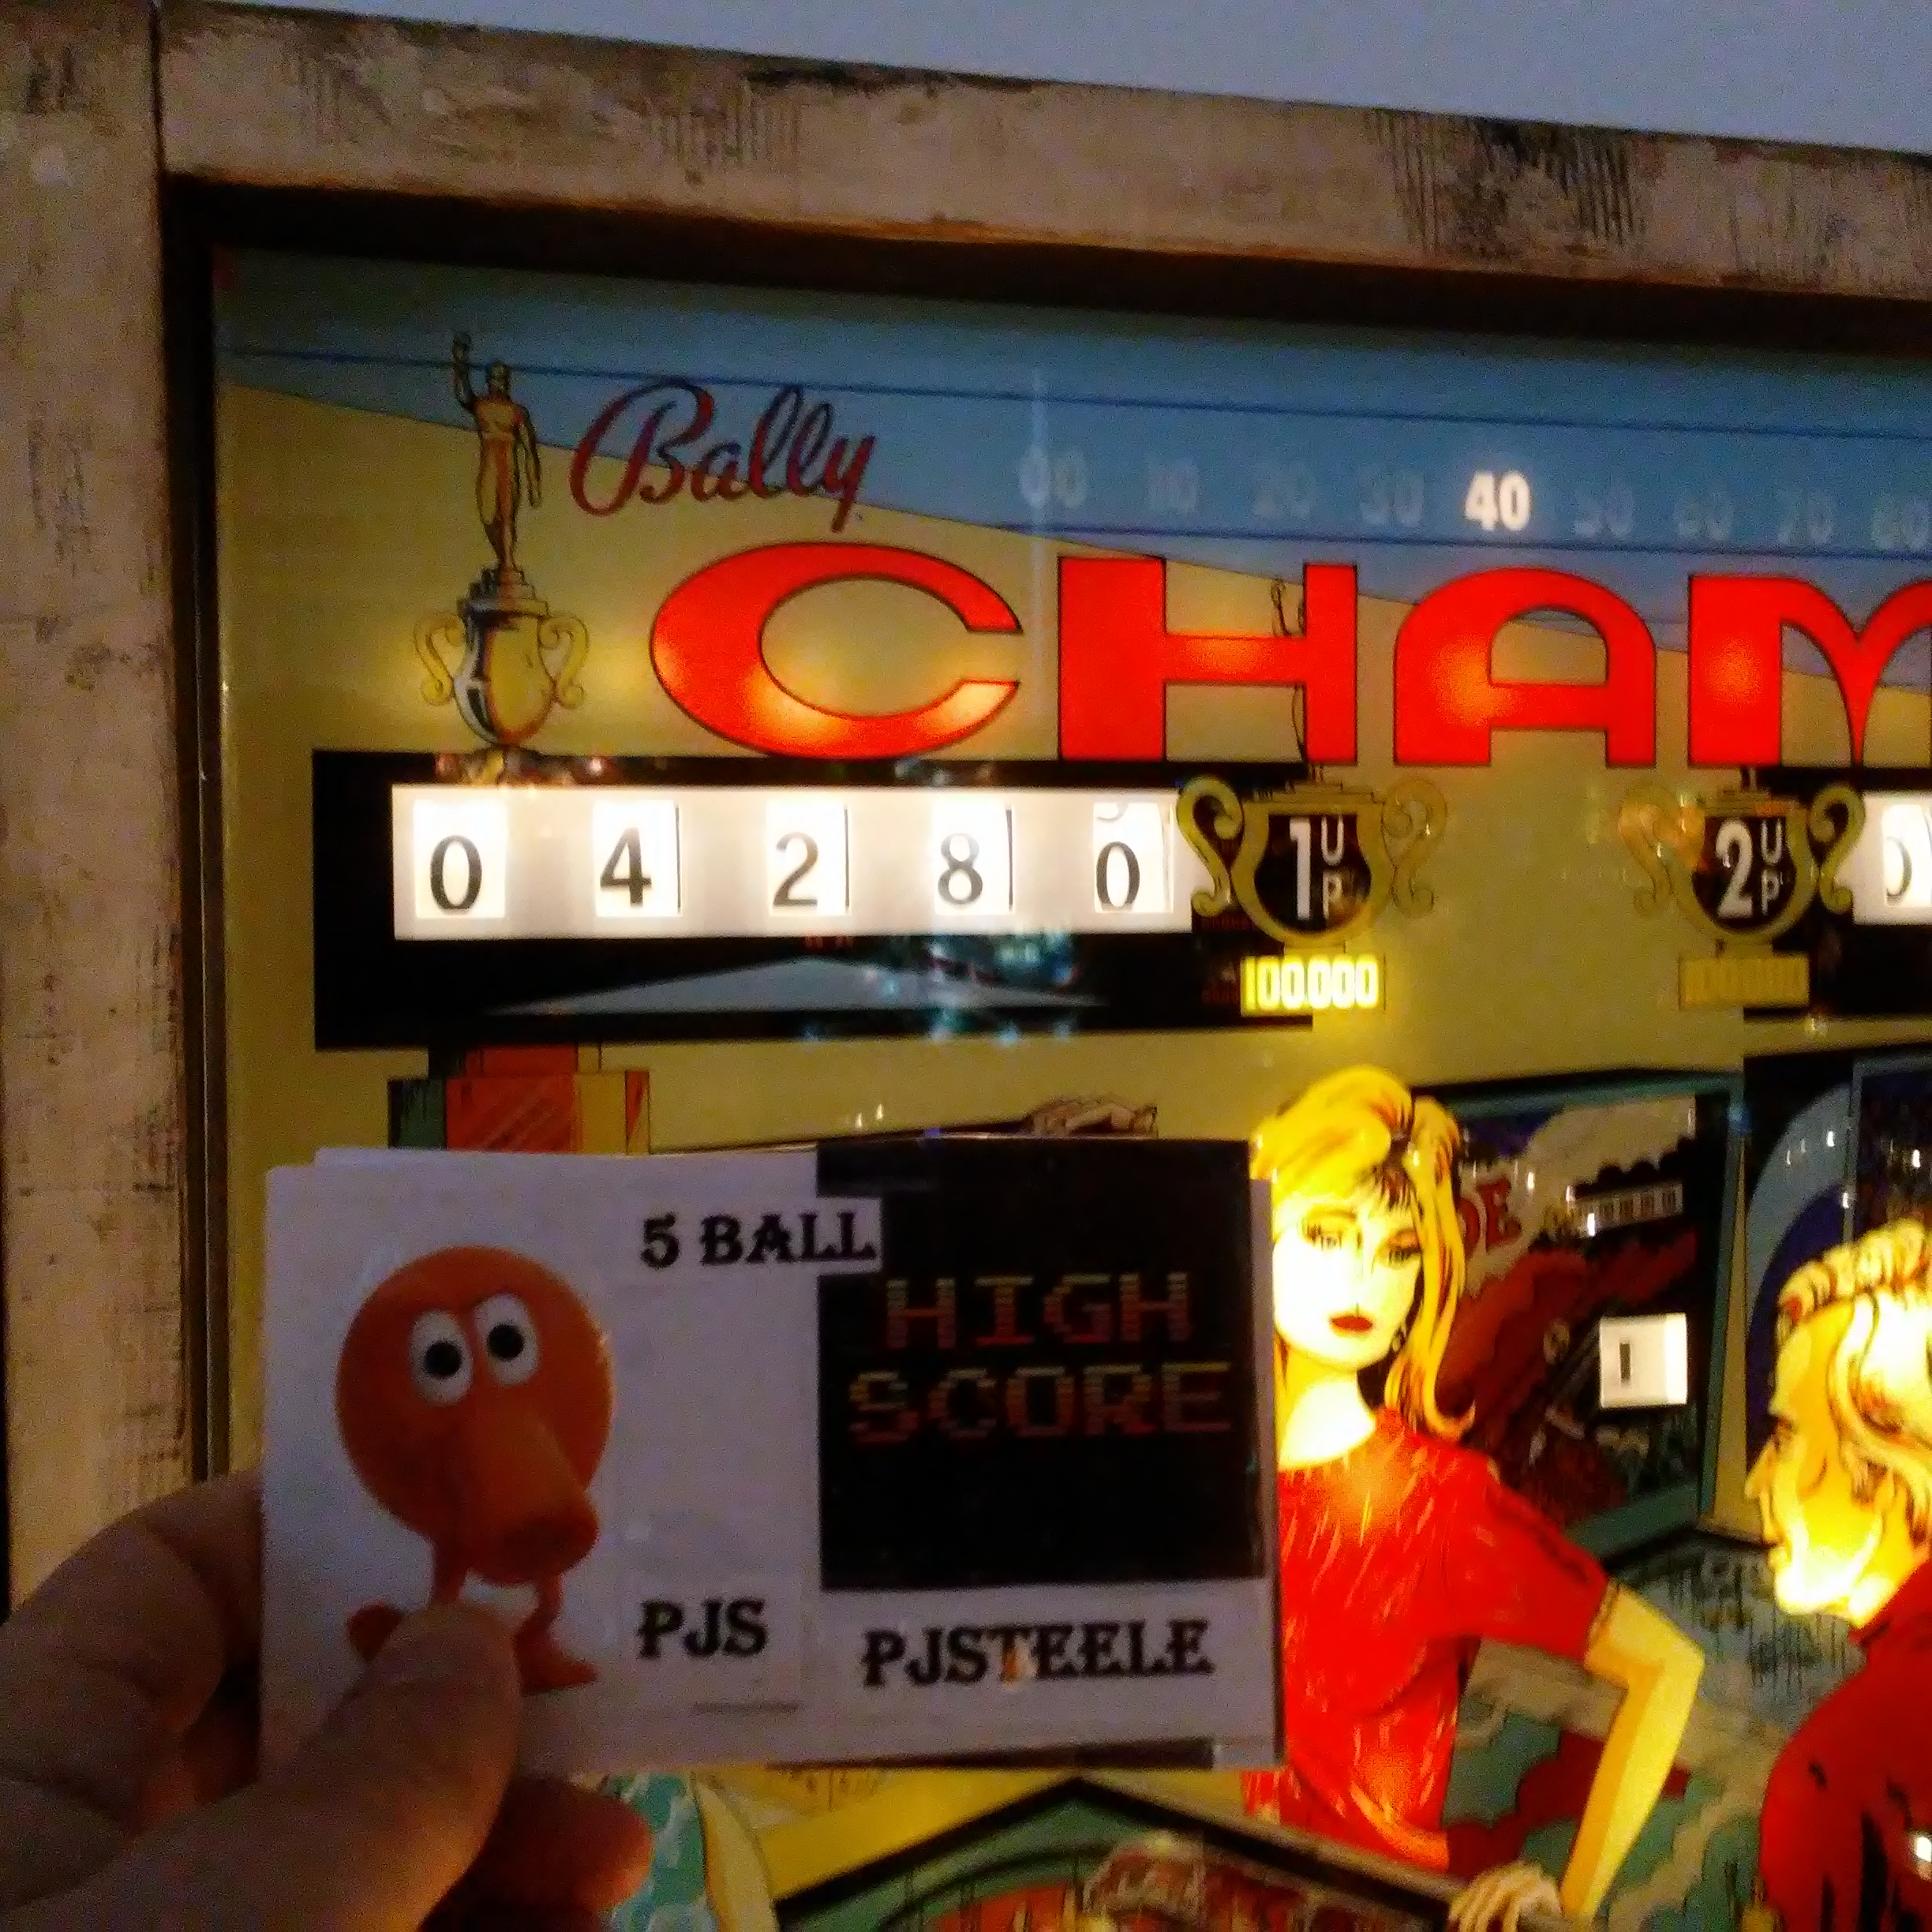 Pjsteele: Champ (Pinball: 5 Balls) 104,280 points on 2018-03-03 22:47:36